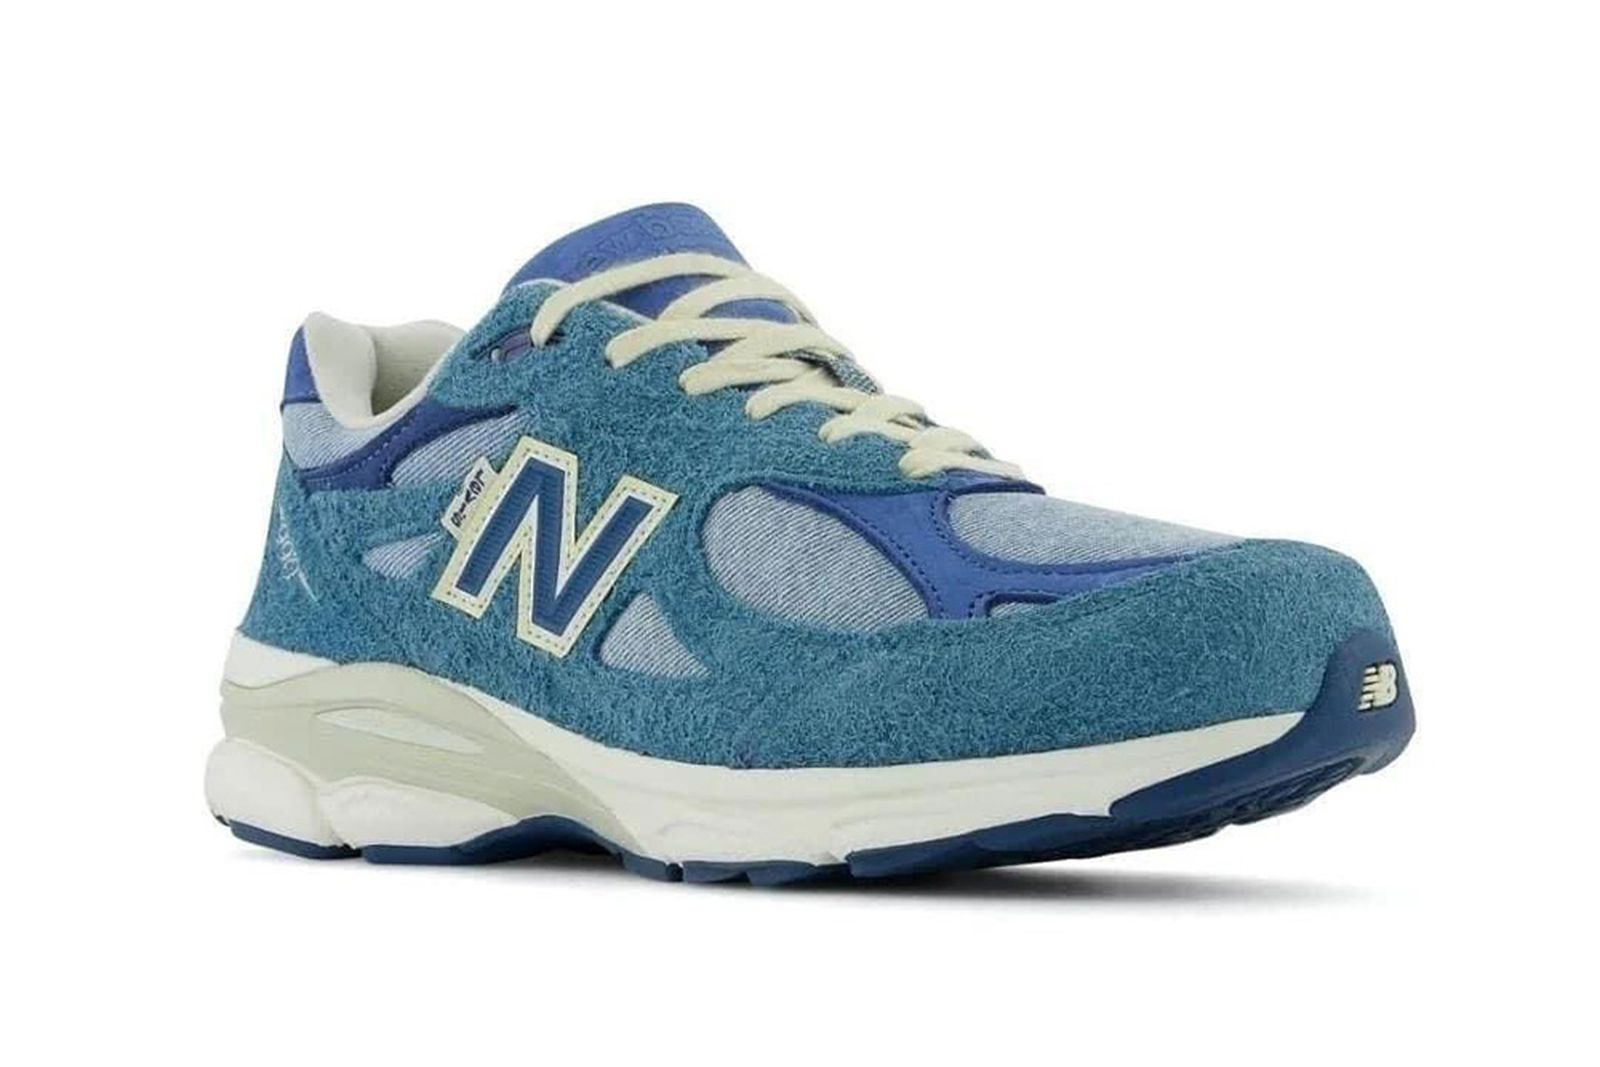 levis-new-balance-990v3-release-date-price-01